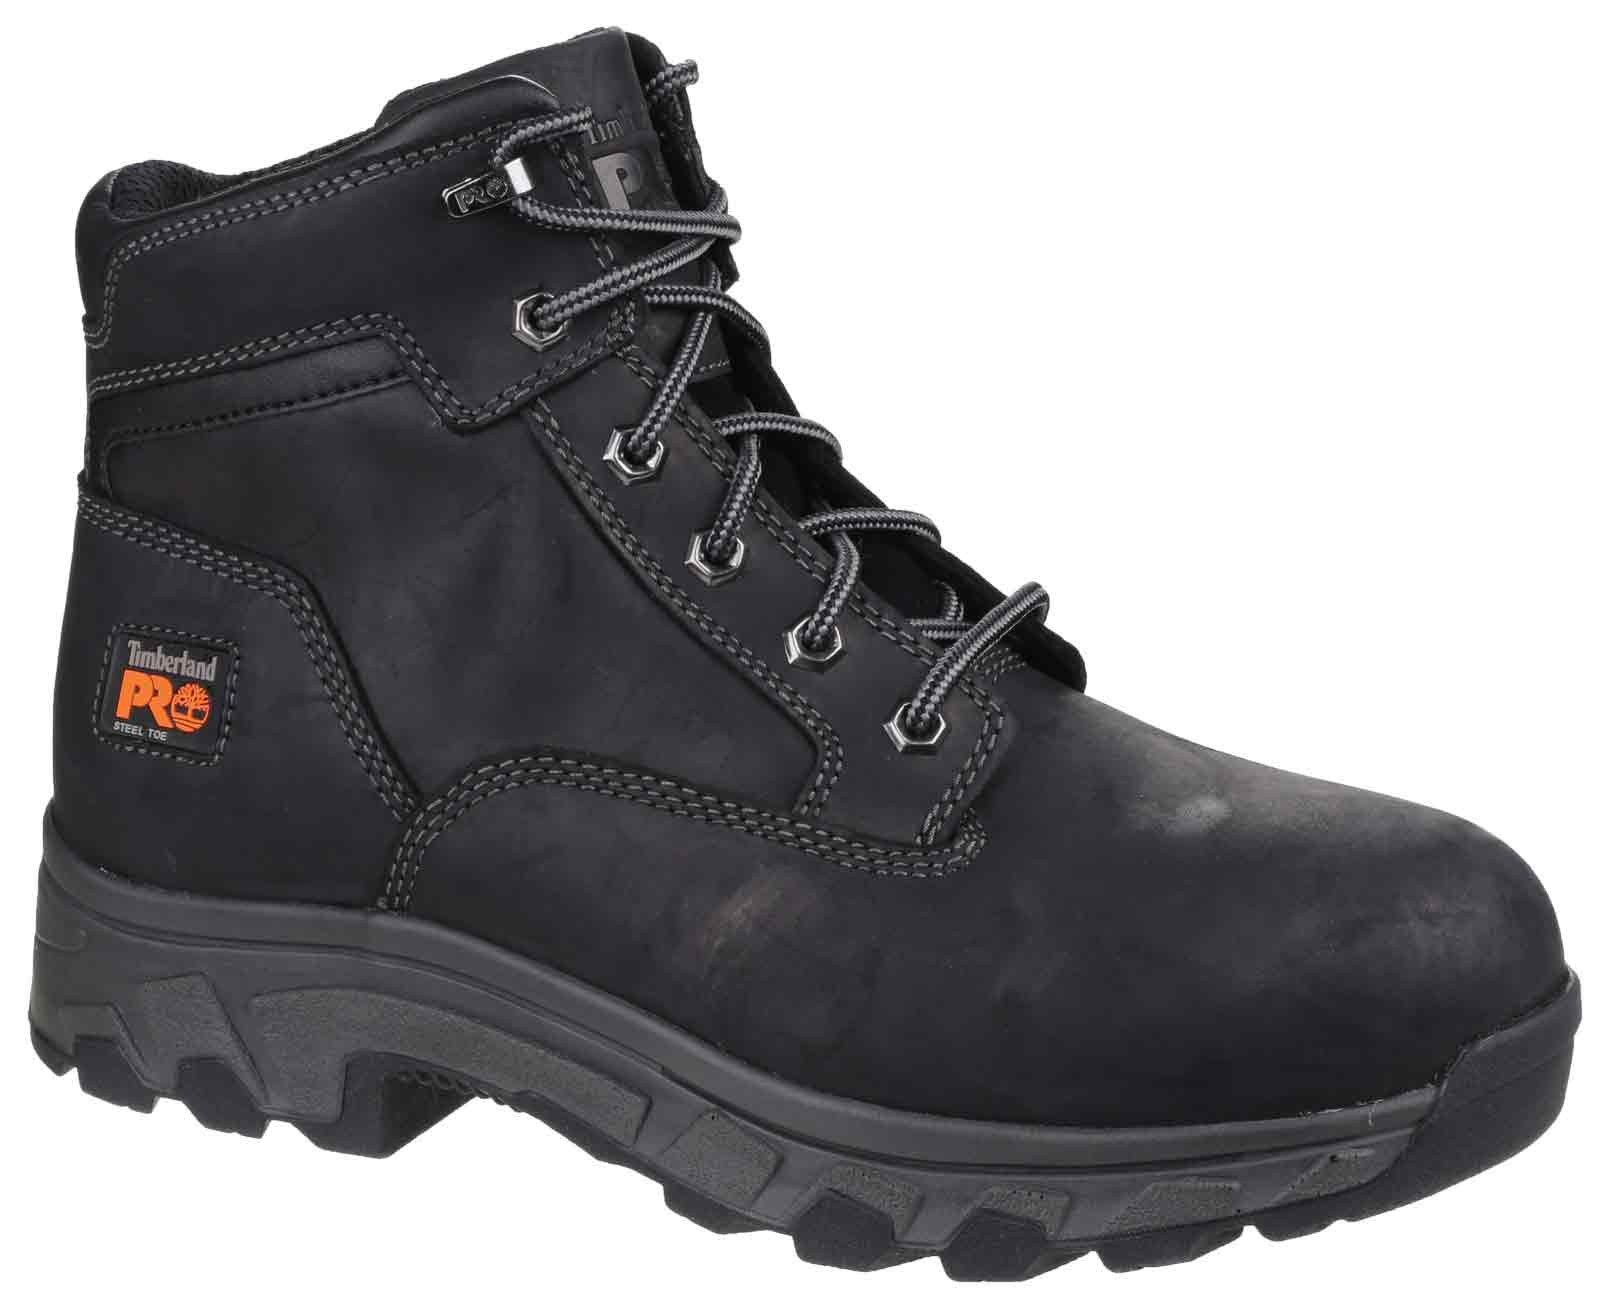 8fdaf9ed377c ... Water Resistant Lace up Safety Boot Timberland Pro Workstead Safety  Boot Black ...